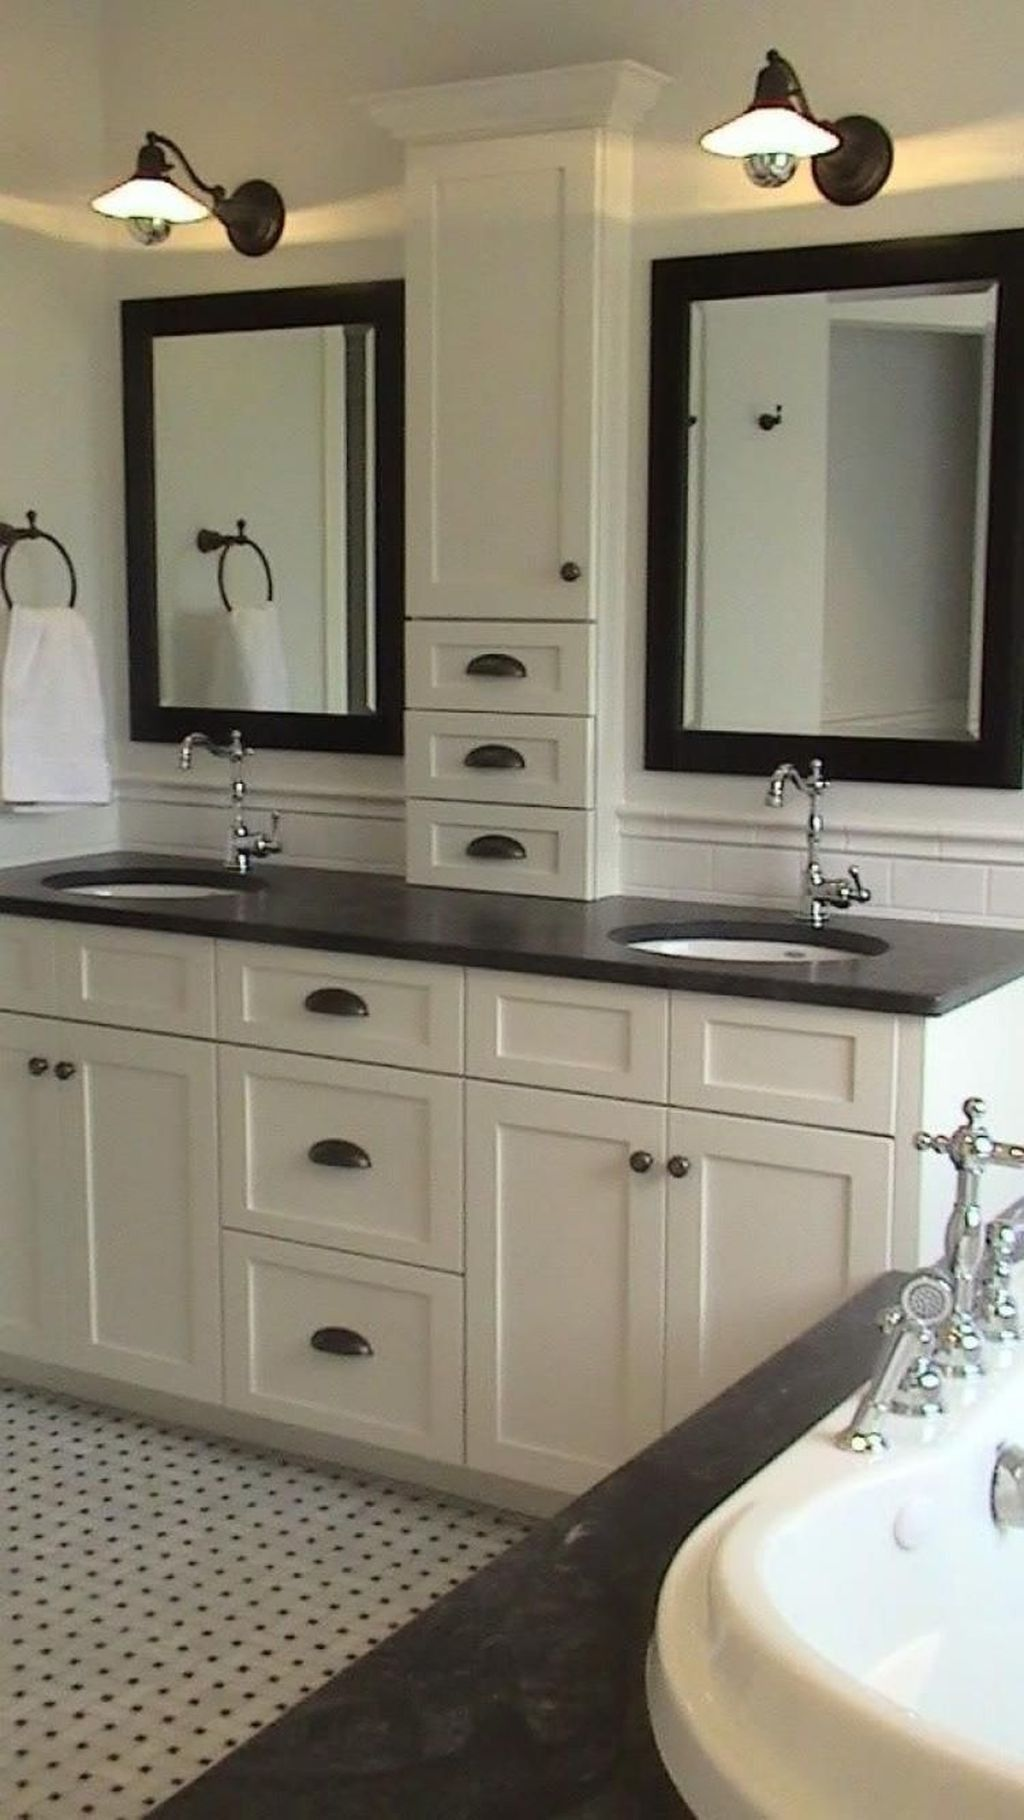 47 Nice Farmhouse Bathroom Remodel Ideas On A Budget images